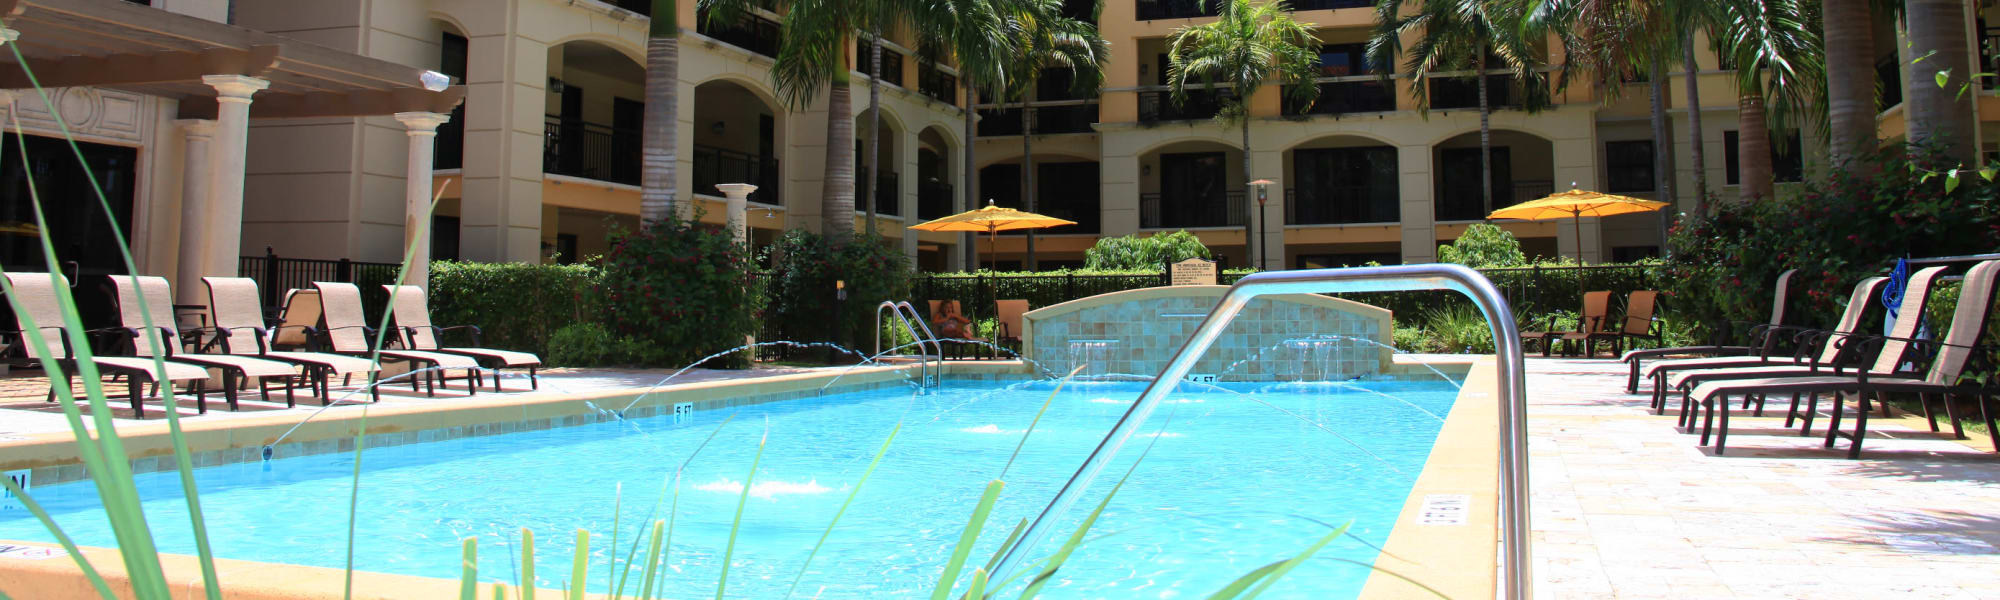 Amenities at The Heritage at Boca Raton in Boca Raton, Florida